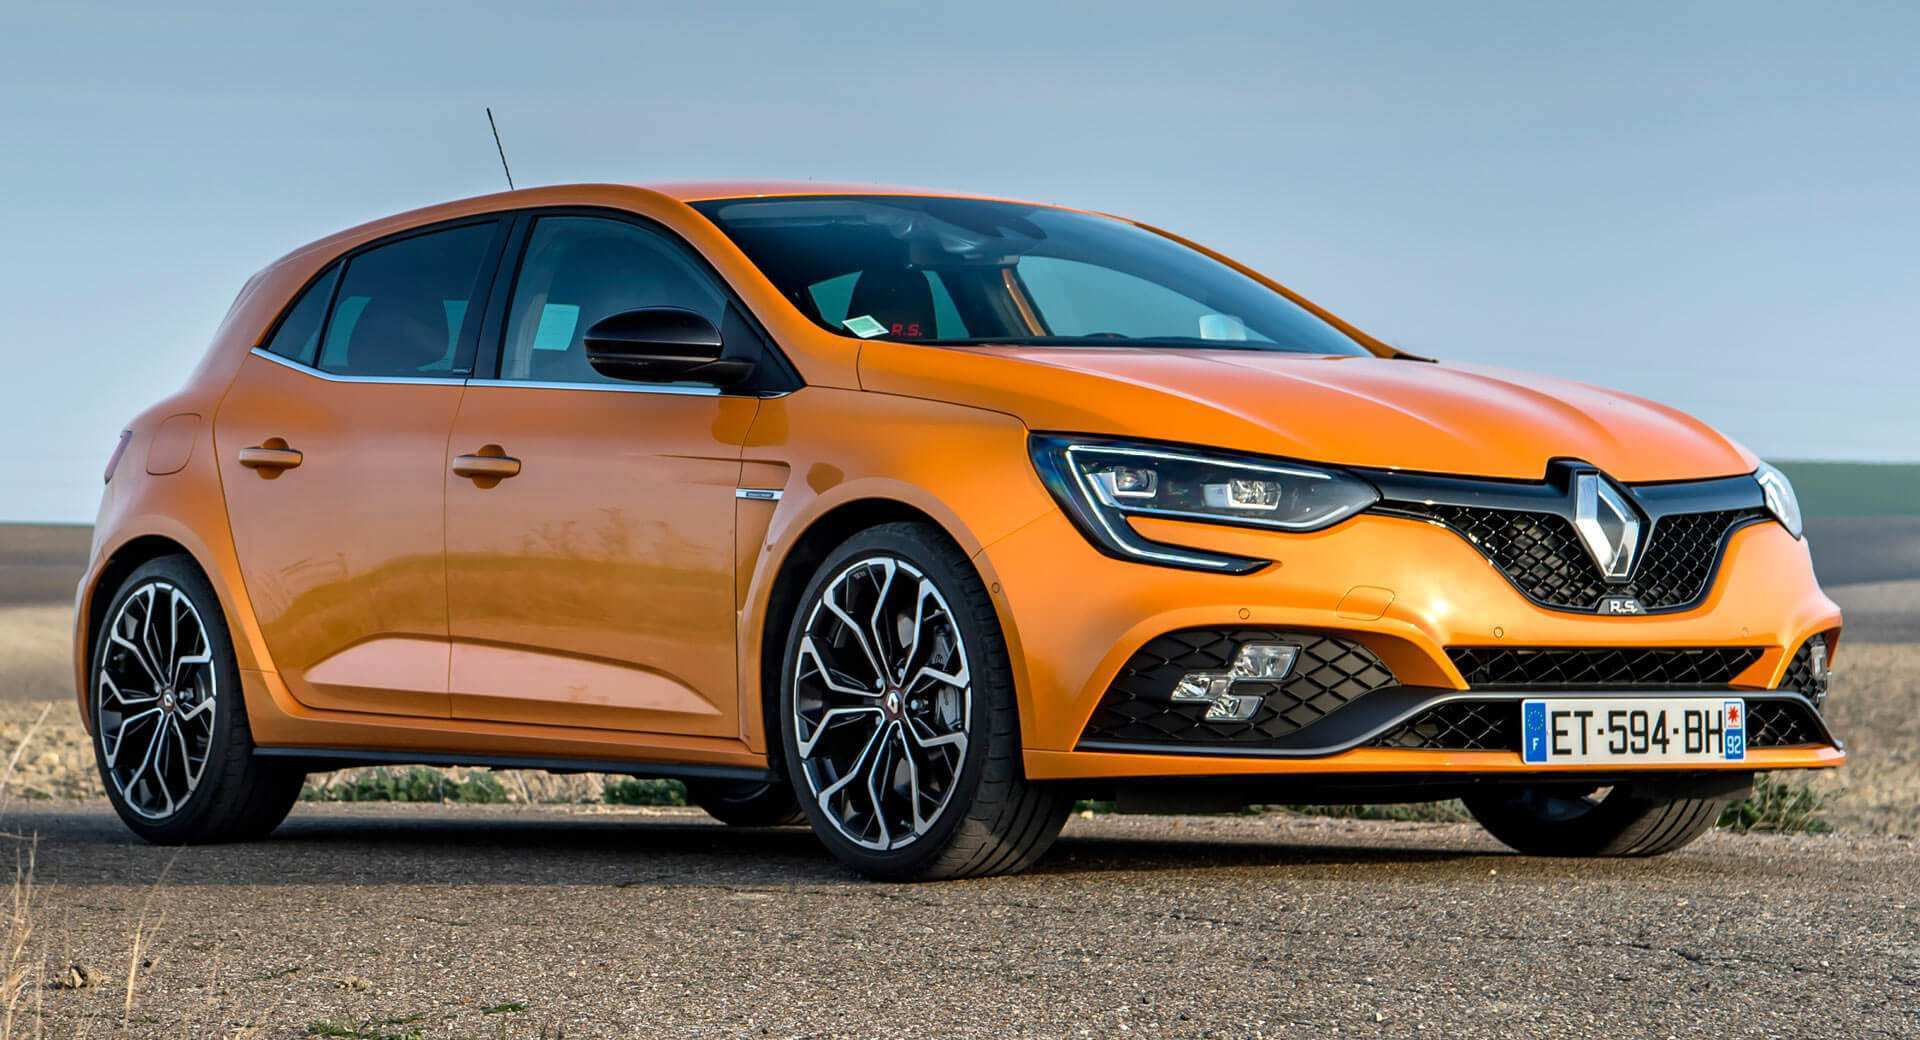 82 Great 2019 Renault Megane Rs Pictures with 2019 Renault Megane Rs